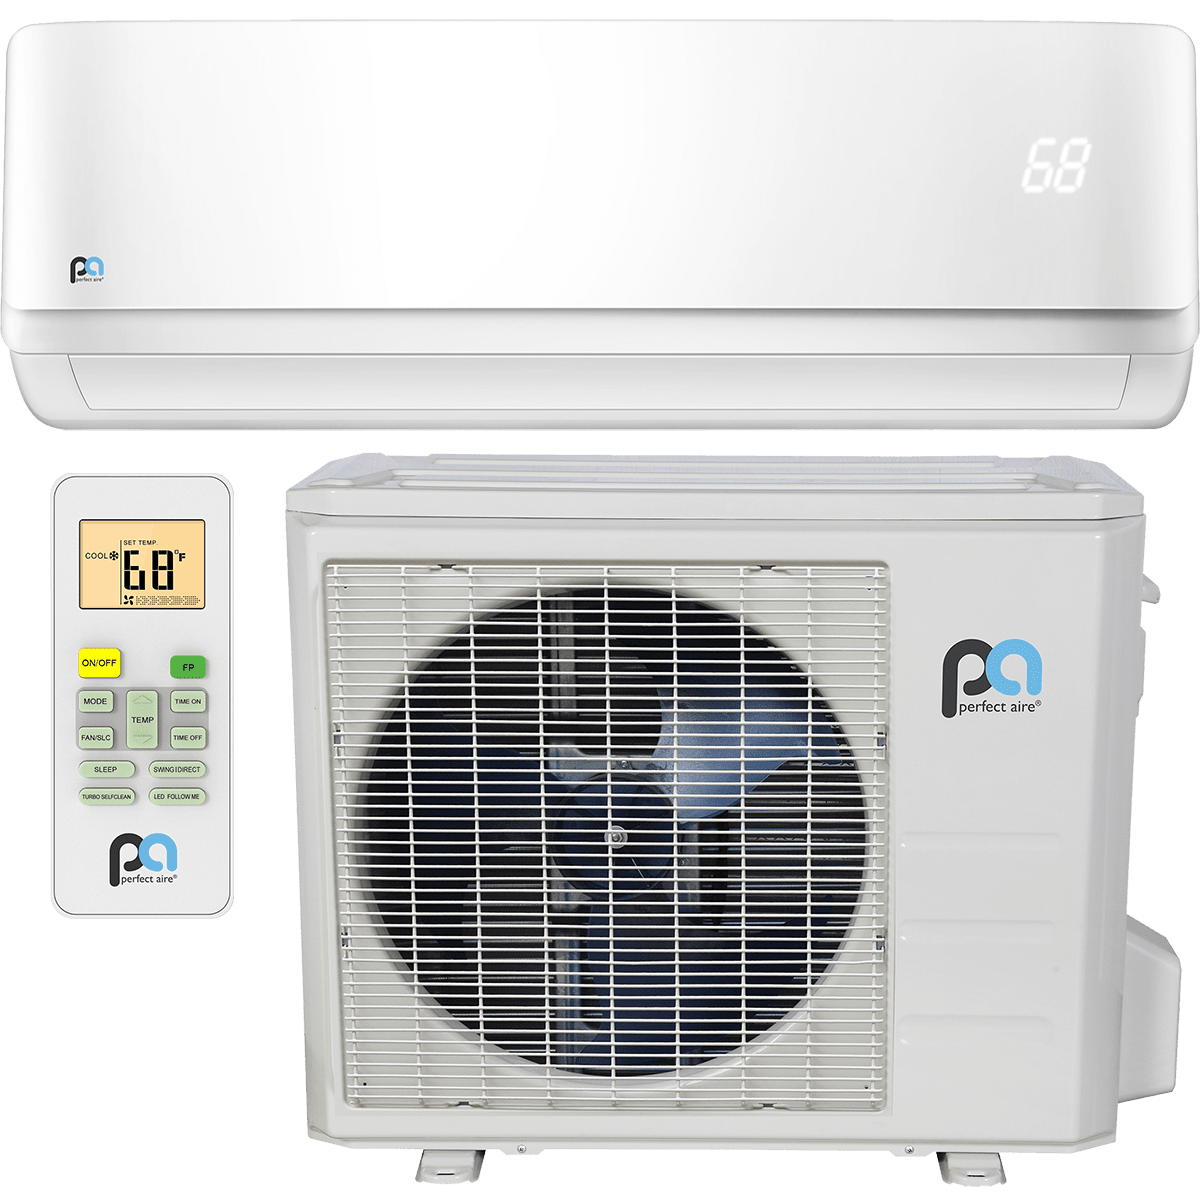 #C5C506 Lg Mini Split Heat Pump Reviews Search Highly Rated 2509 Ductless Heat Pump Ratings wallpapers with 1200x1200 px on helpvideos.info - Air Conditioners, Air Coolers and more